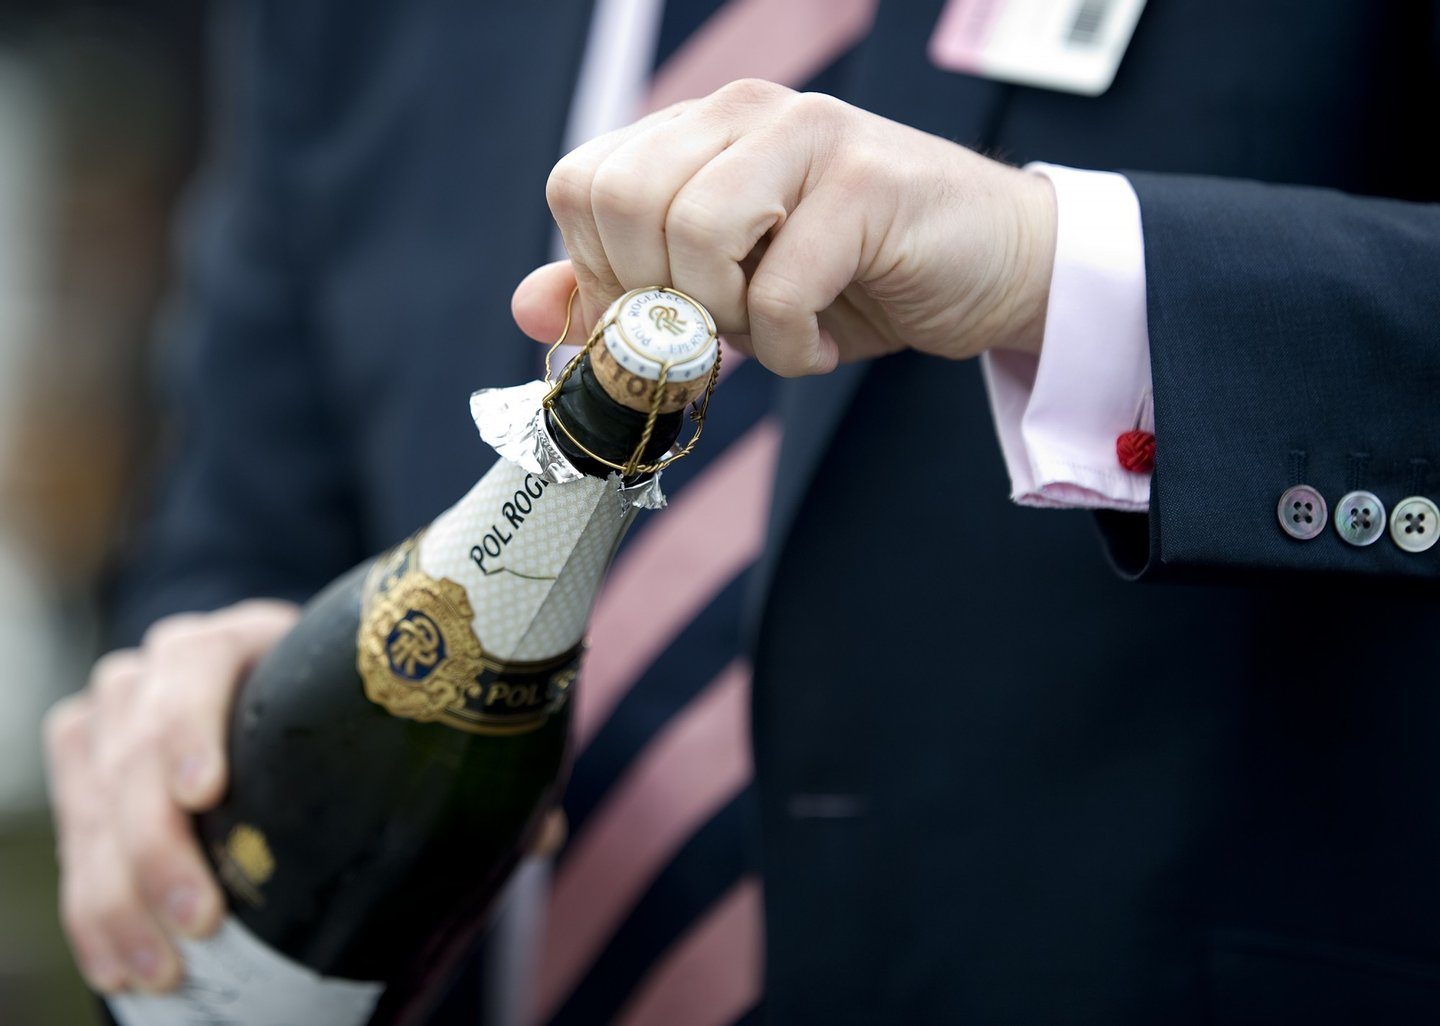 CHESTER, ENGLAND - MAY 10: Opening of a bottle in the champagne bar at Chester racecourse on May 10, 2012 in Chester, England. (Photo by Alan Crowhurst/Getty Images)